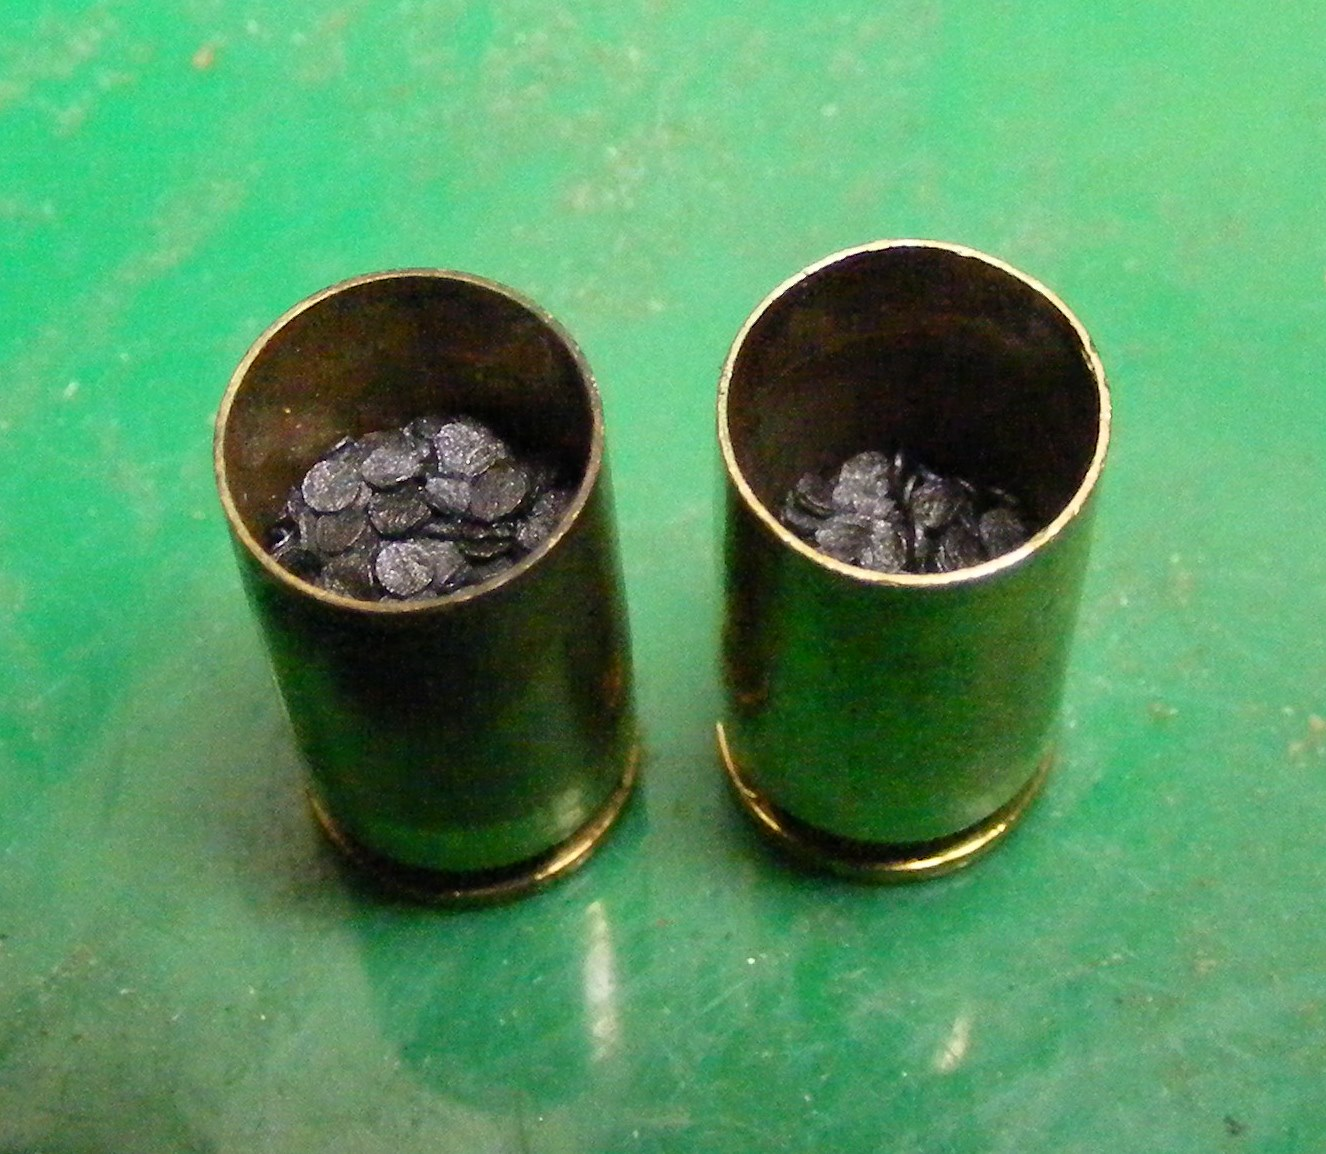 Eaton Rapids Joe: A problem at the reloading bench